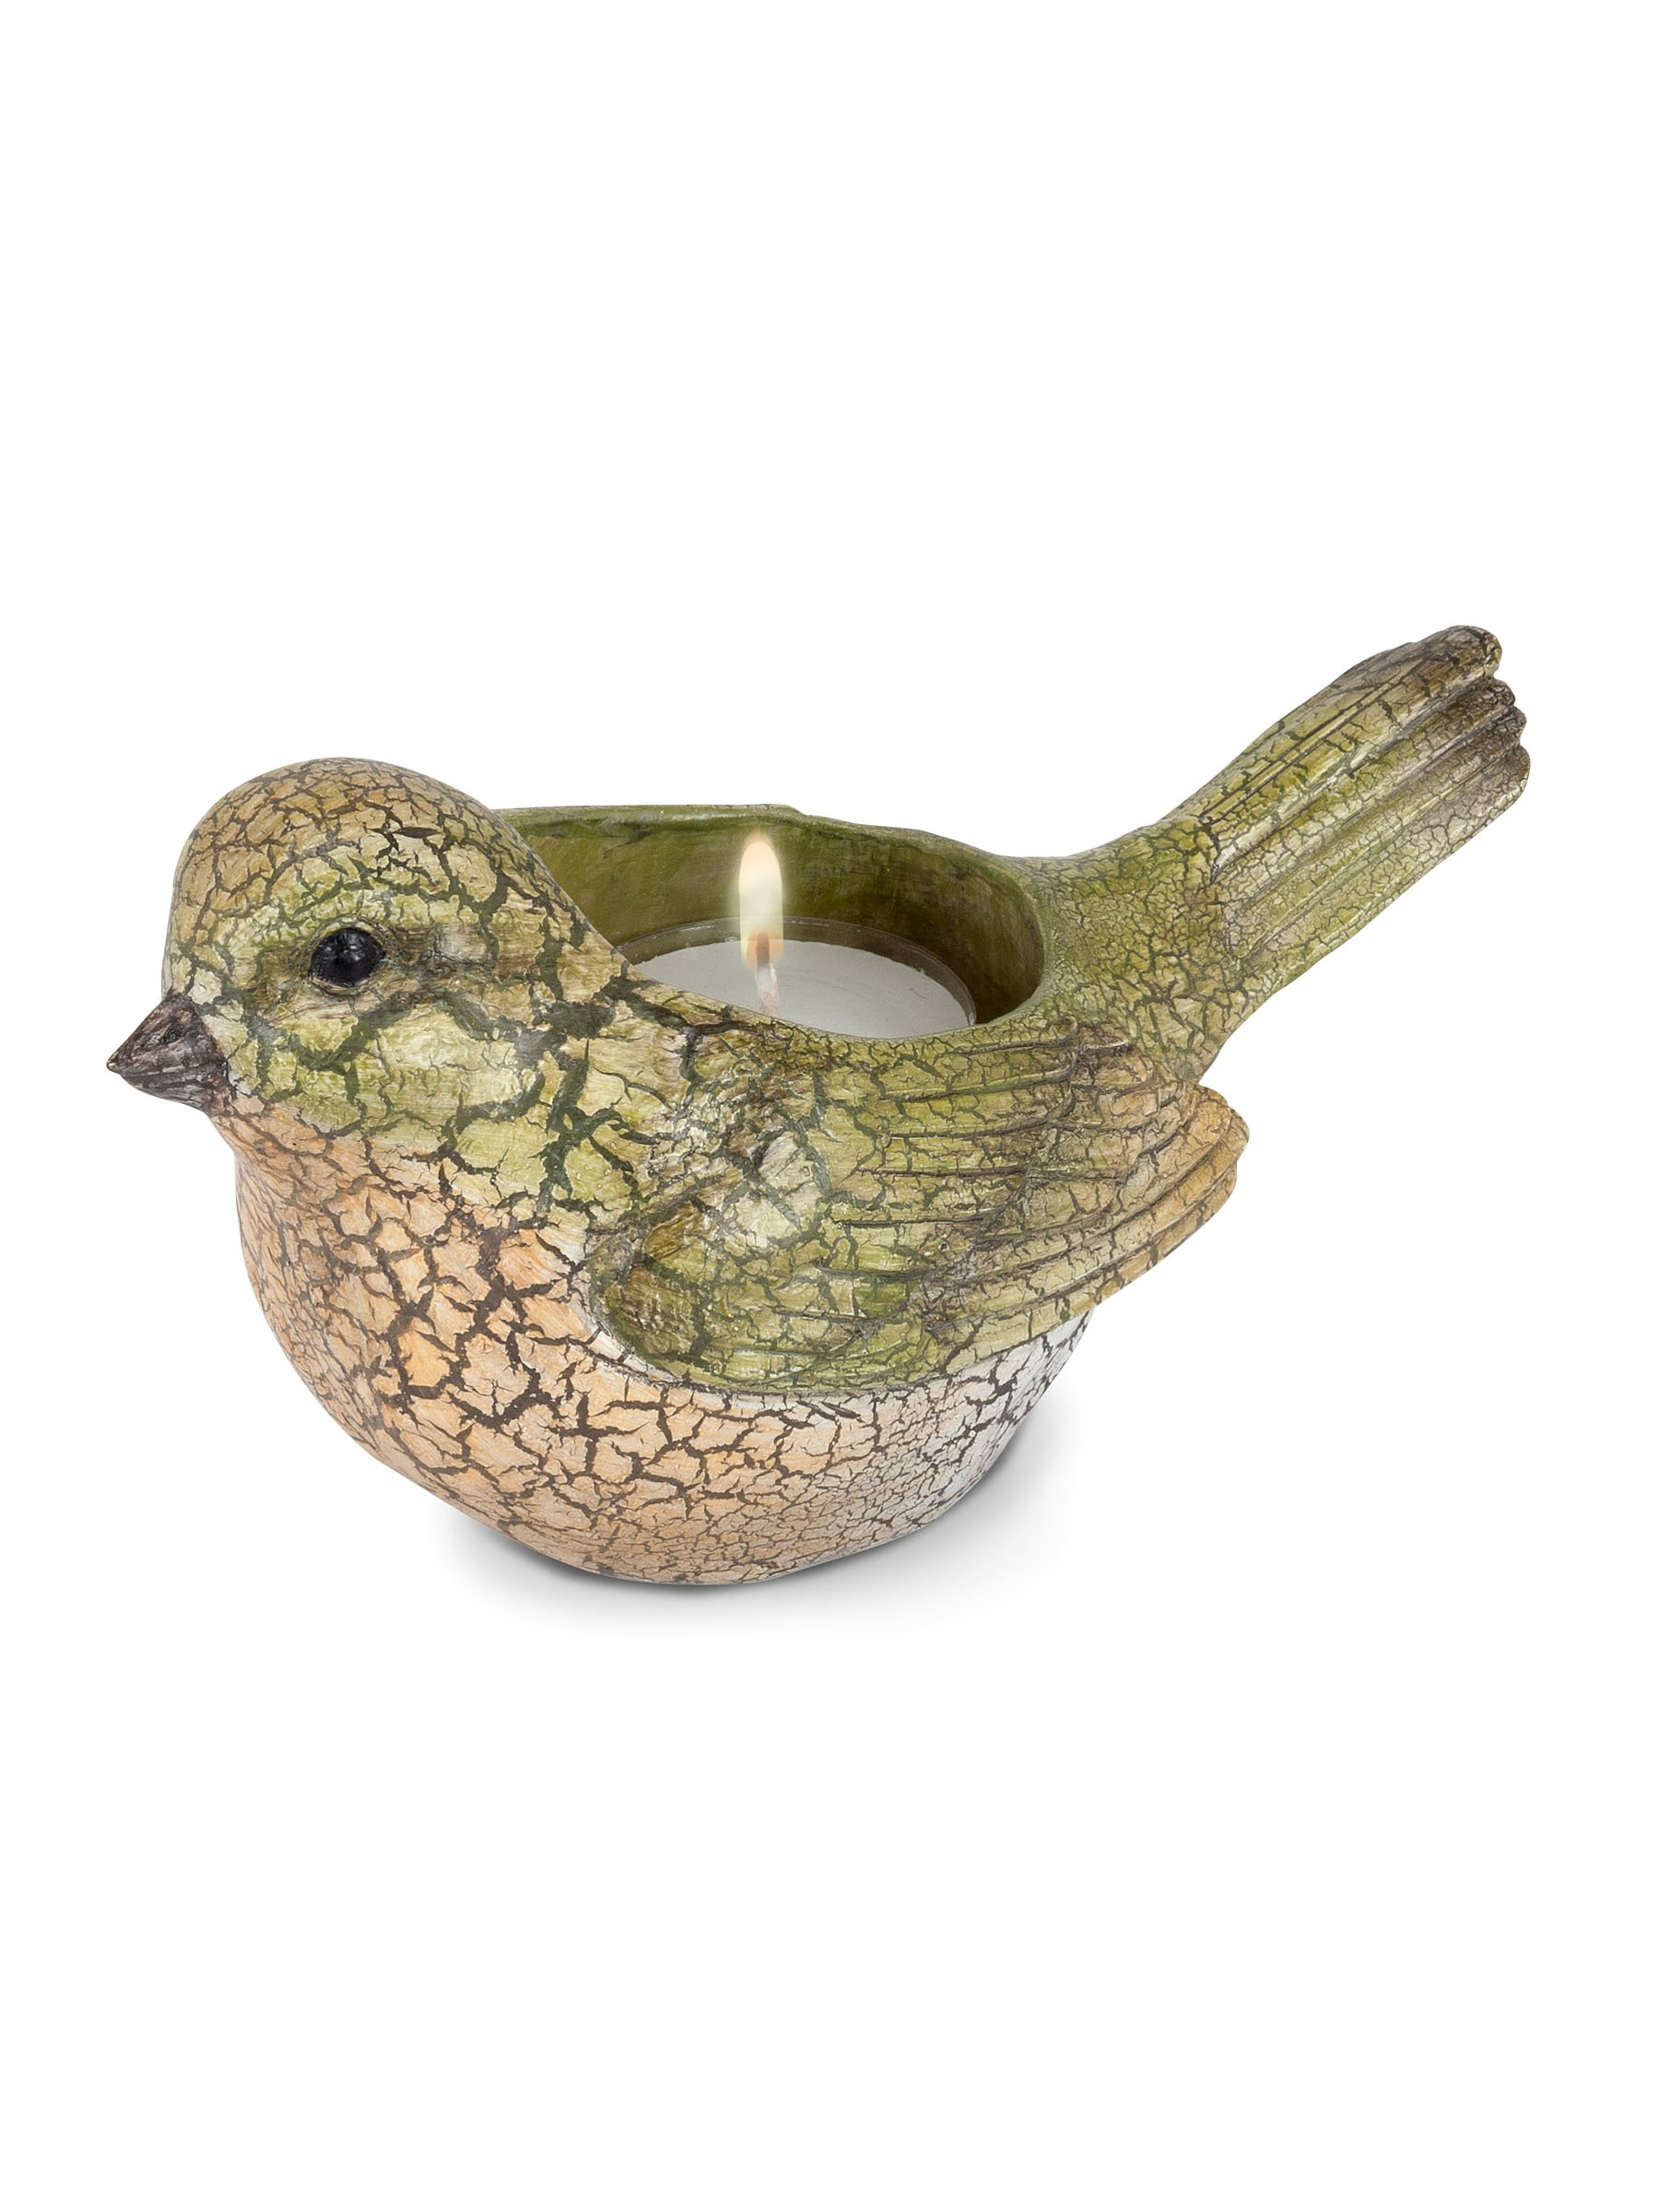 Abbott Collection 27-FINCH/TLITE Bird Tealight Holder, Green